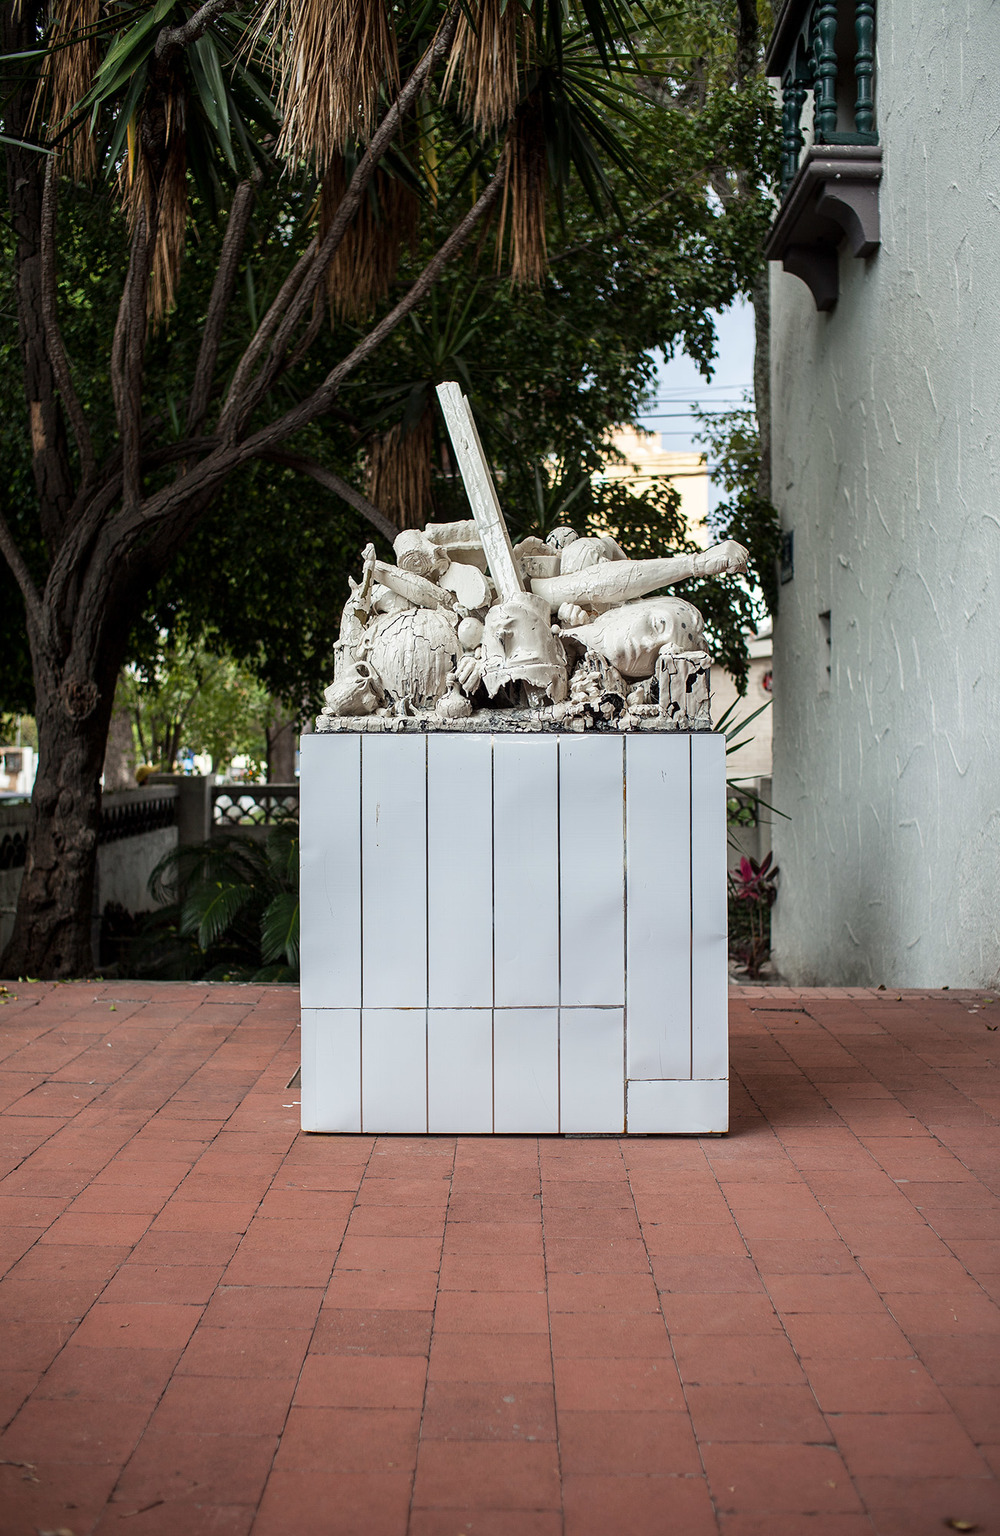 Los Payasos (February 17 – August 28, 2015: Cerámica Suro Contemporánea, Guadalajara, Jalisco, Mexico)    2015   Ceramica Suro slip cast remnants, glaze, and firing plate  77 1/2 x 46 x 27 1/4 inches   Ceramics, 2013–